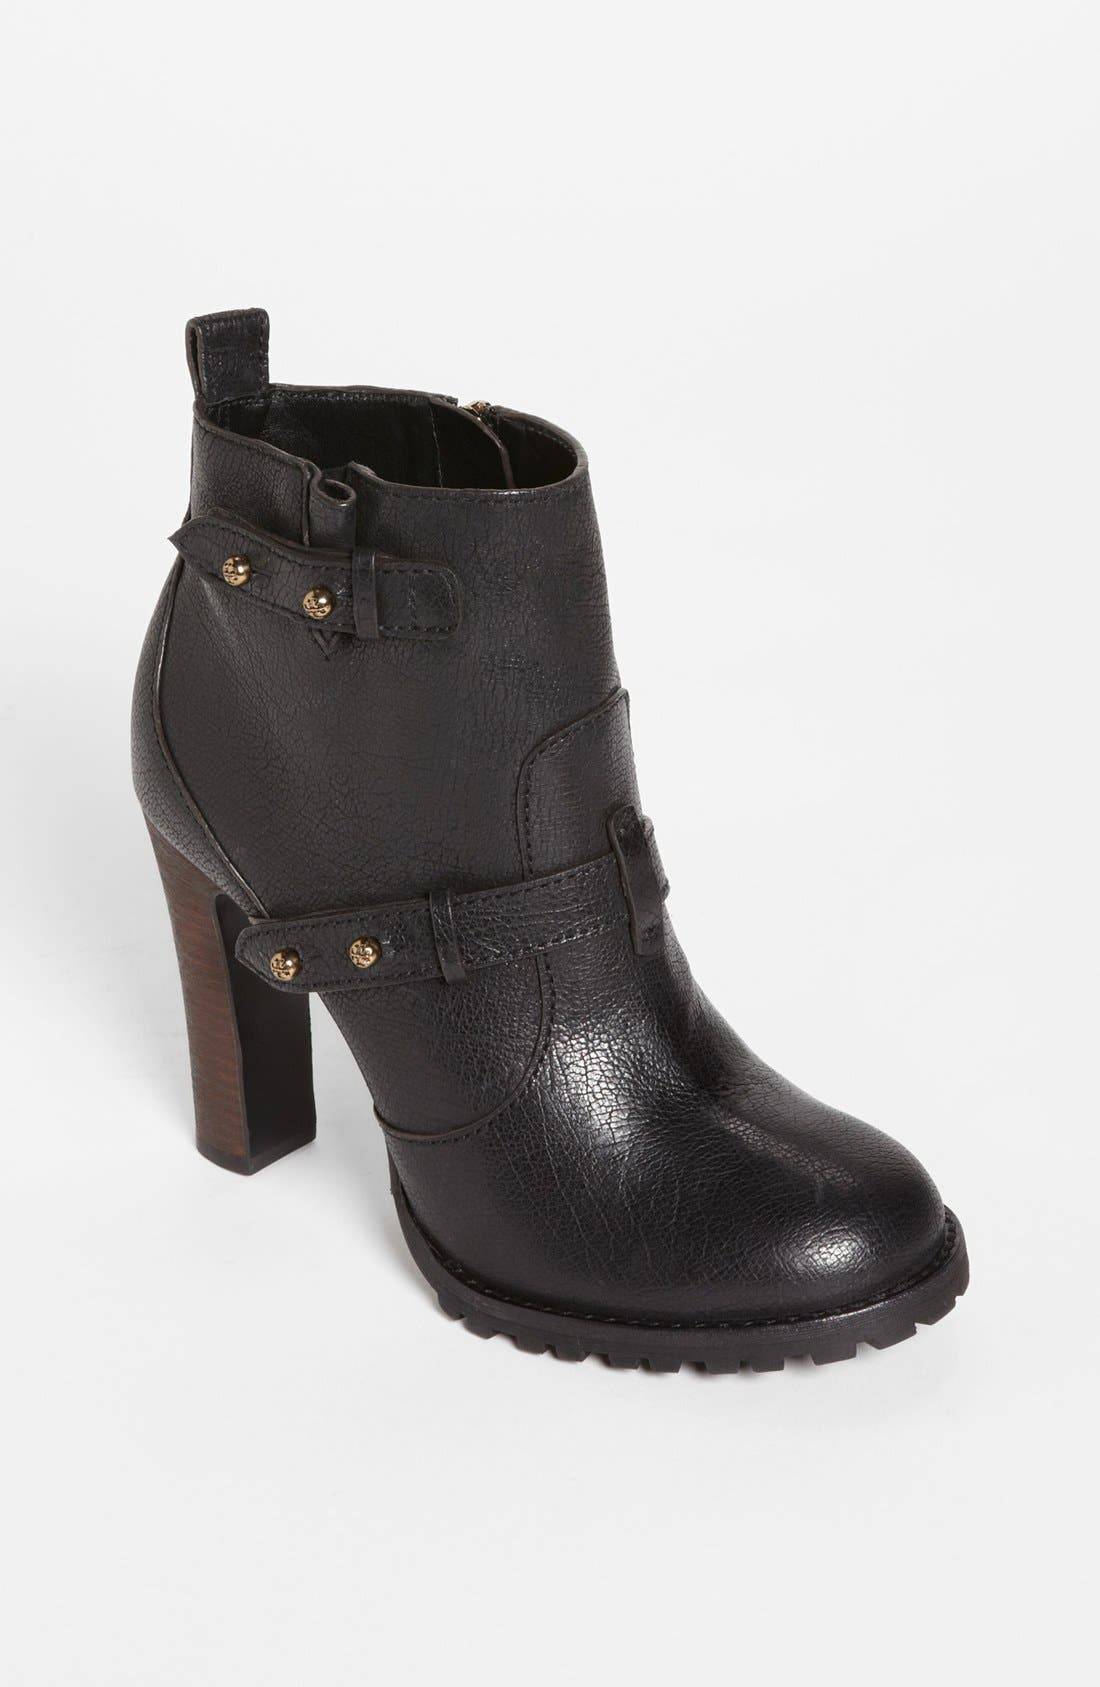 Alternate Image 1 Selected - Tory Burch 'Landers' Bootie